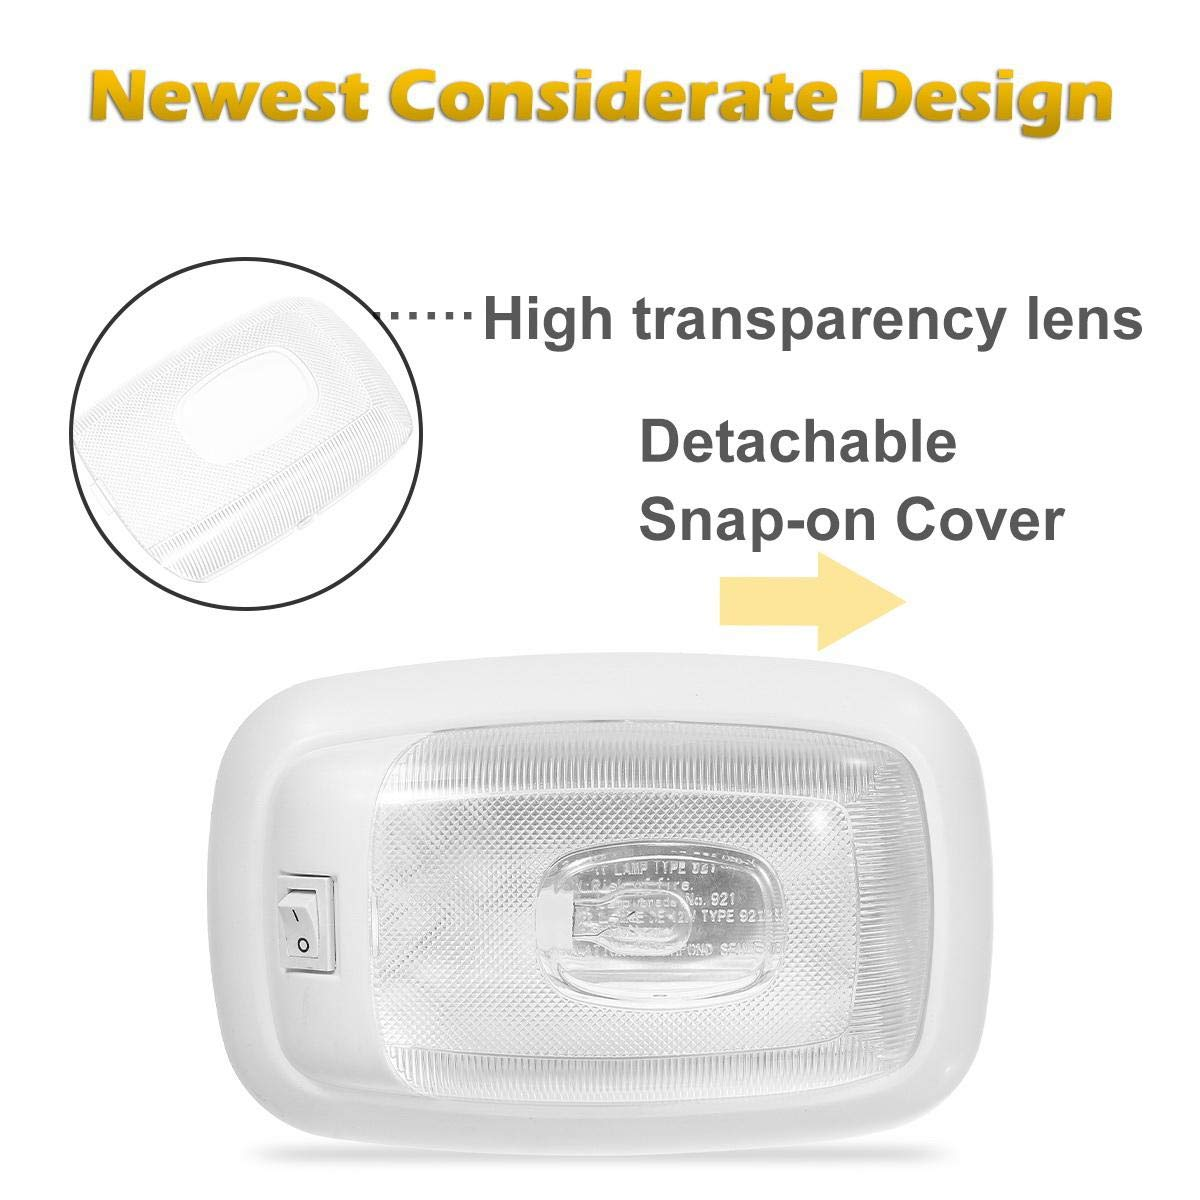 Warm White 2PCS Partsam 12V Halogen Single RV Ceiling Dome Light Fixture RV Interior Lighting Lights with On//Off Switch and Removable Lenses for RV Motorhomes Campers 5th Wheels Trailers Makeover